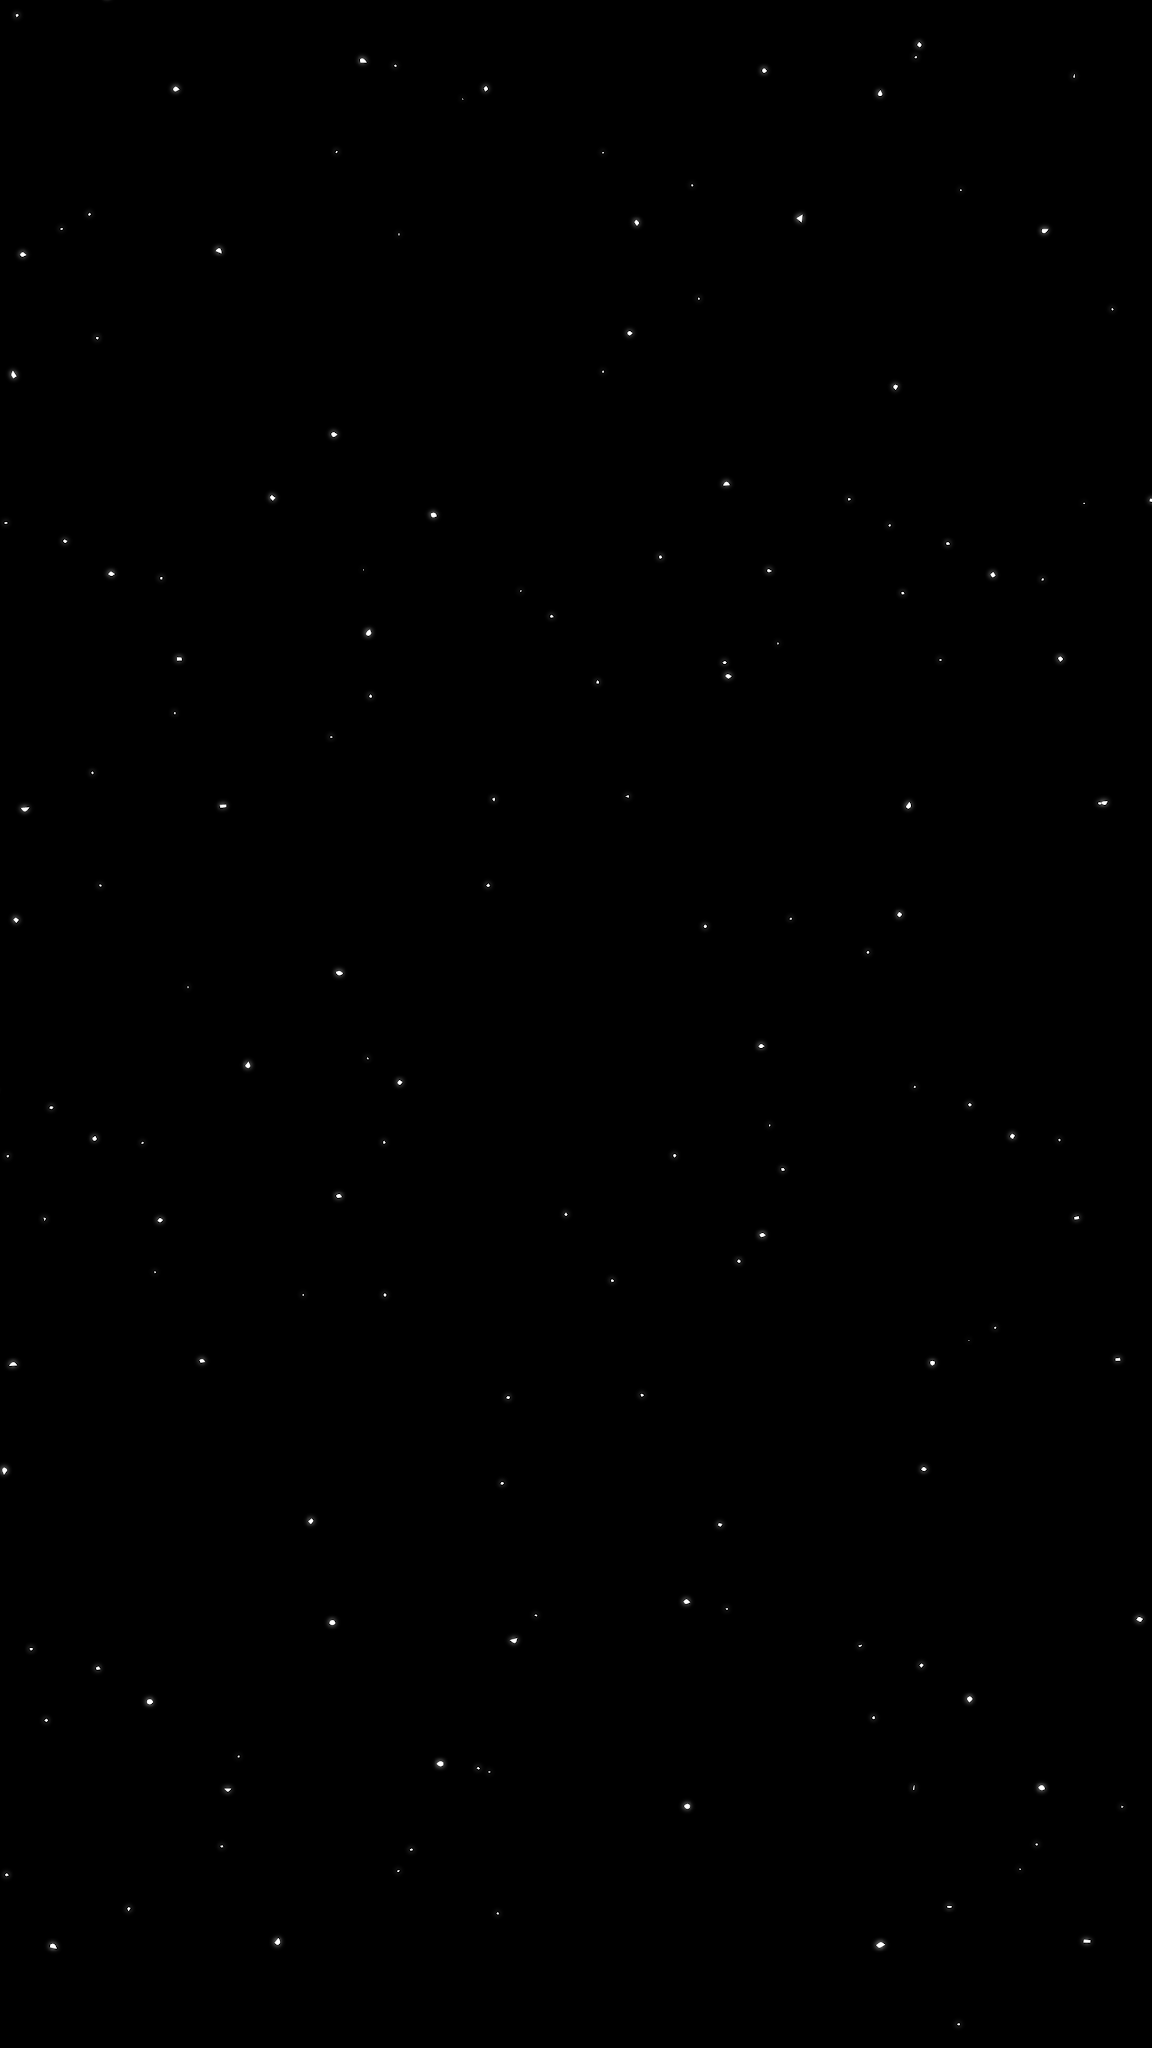 true black oled galaxy wallpaper iphone hd 4k